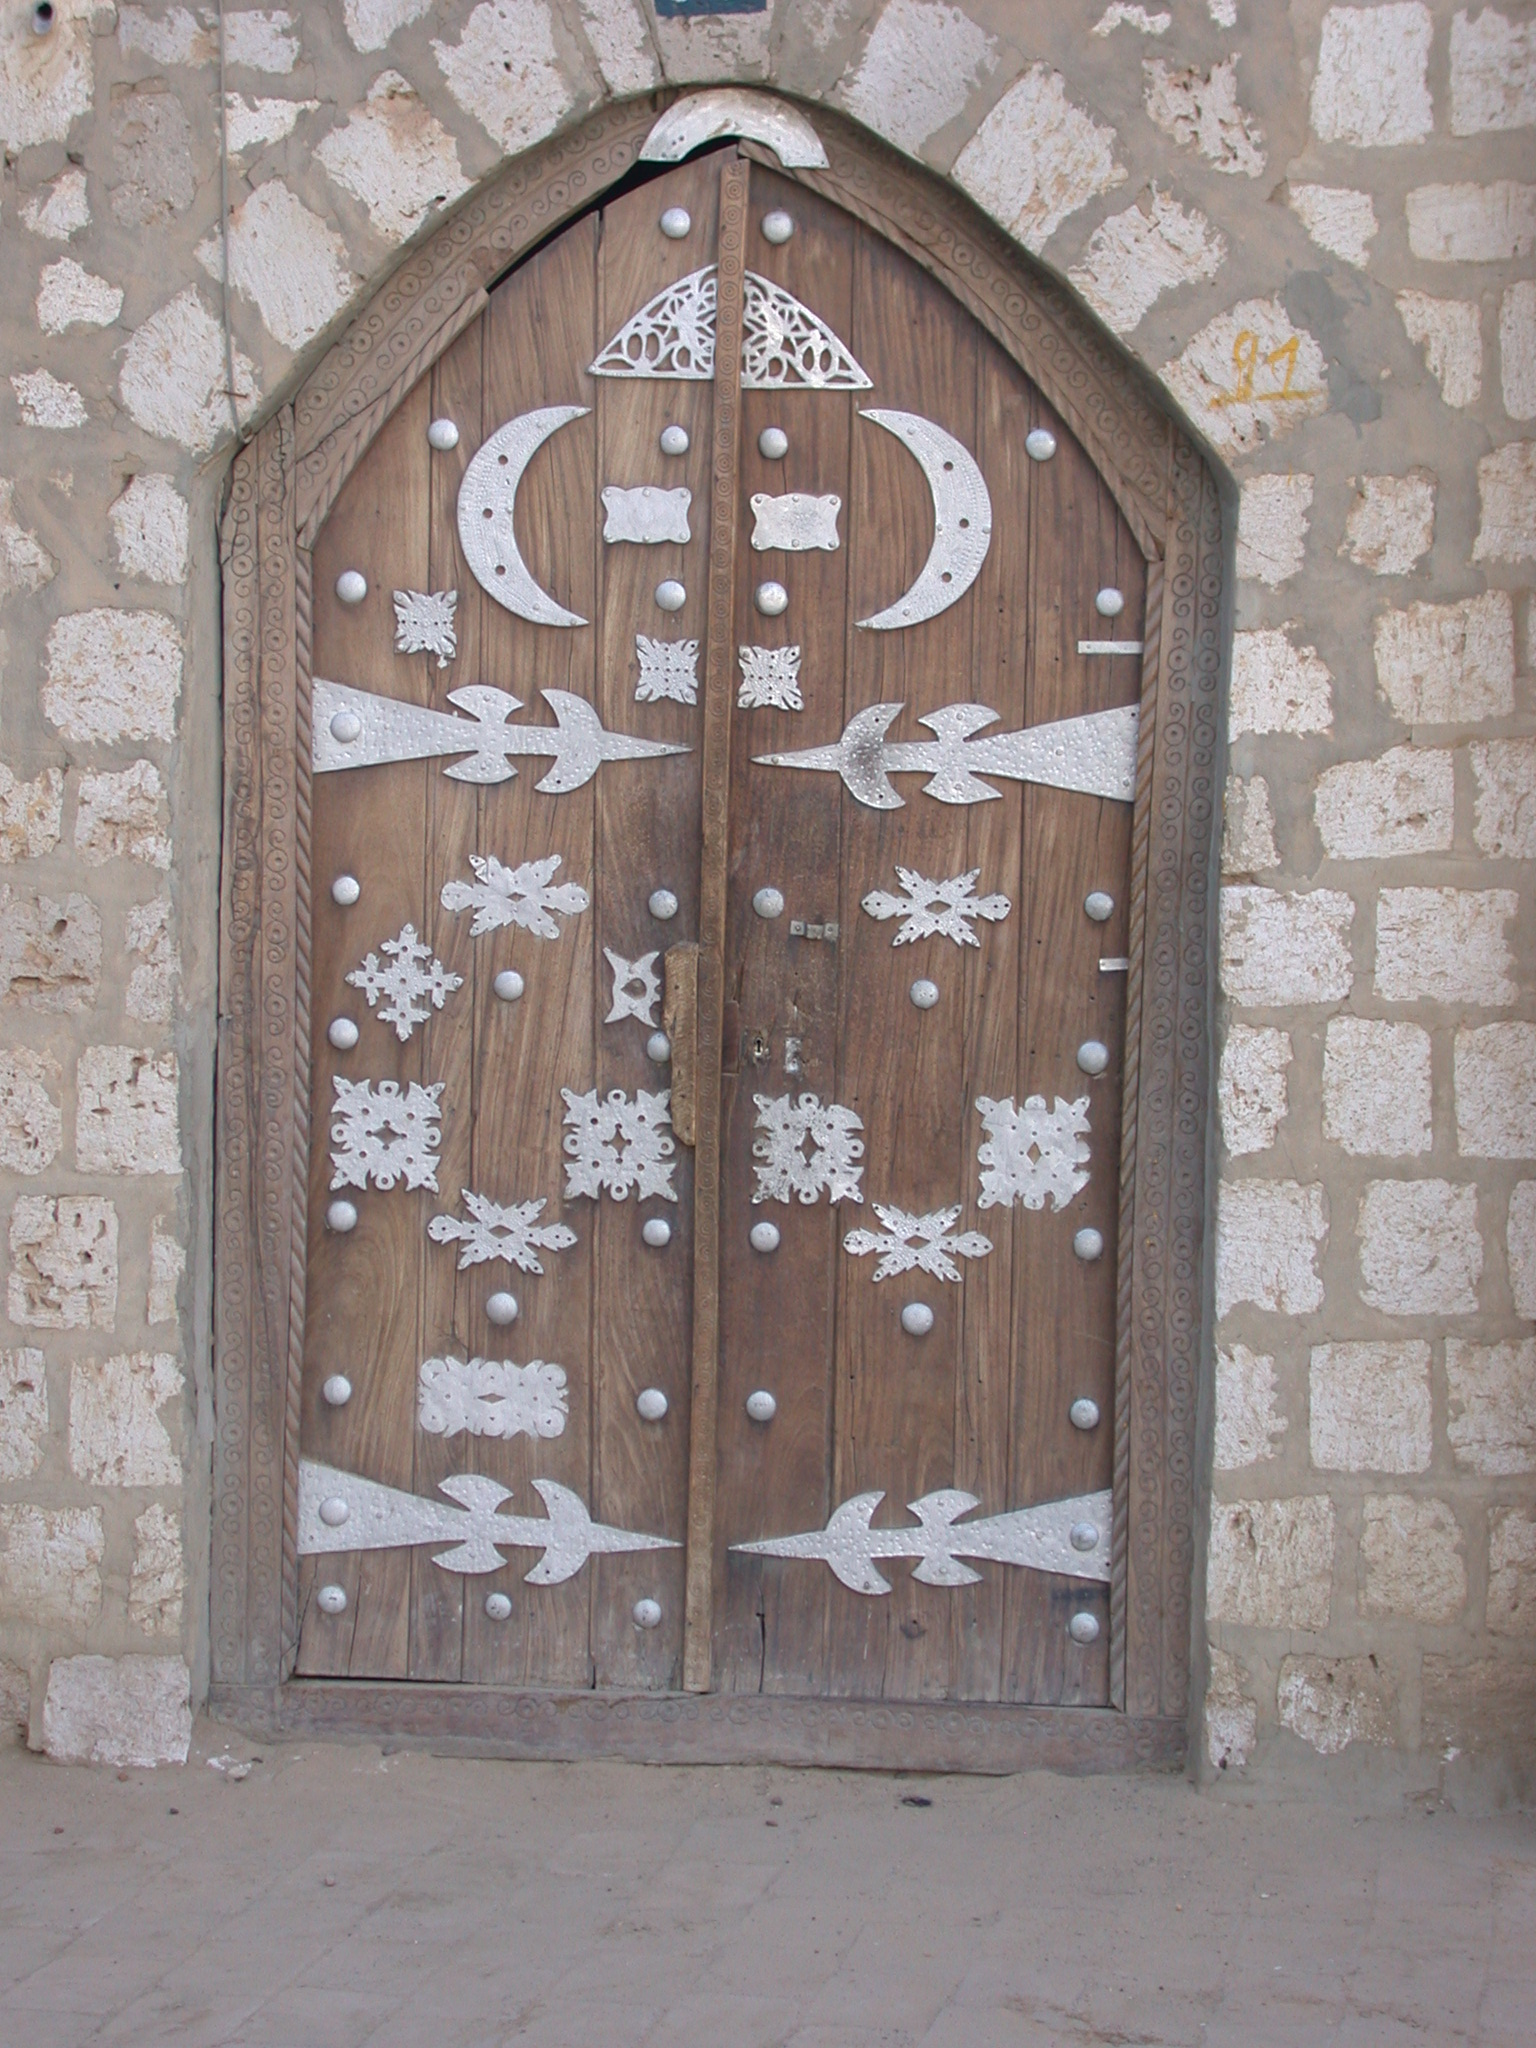 Ornamented Wooden Door, Sidi Yahia Mosque, Timbuktu, Mali